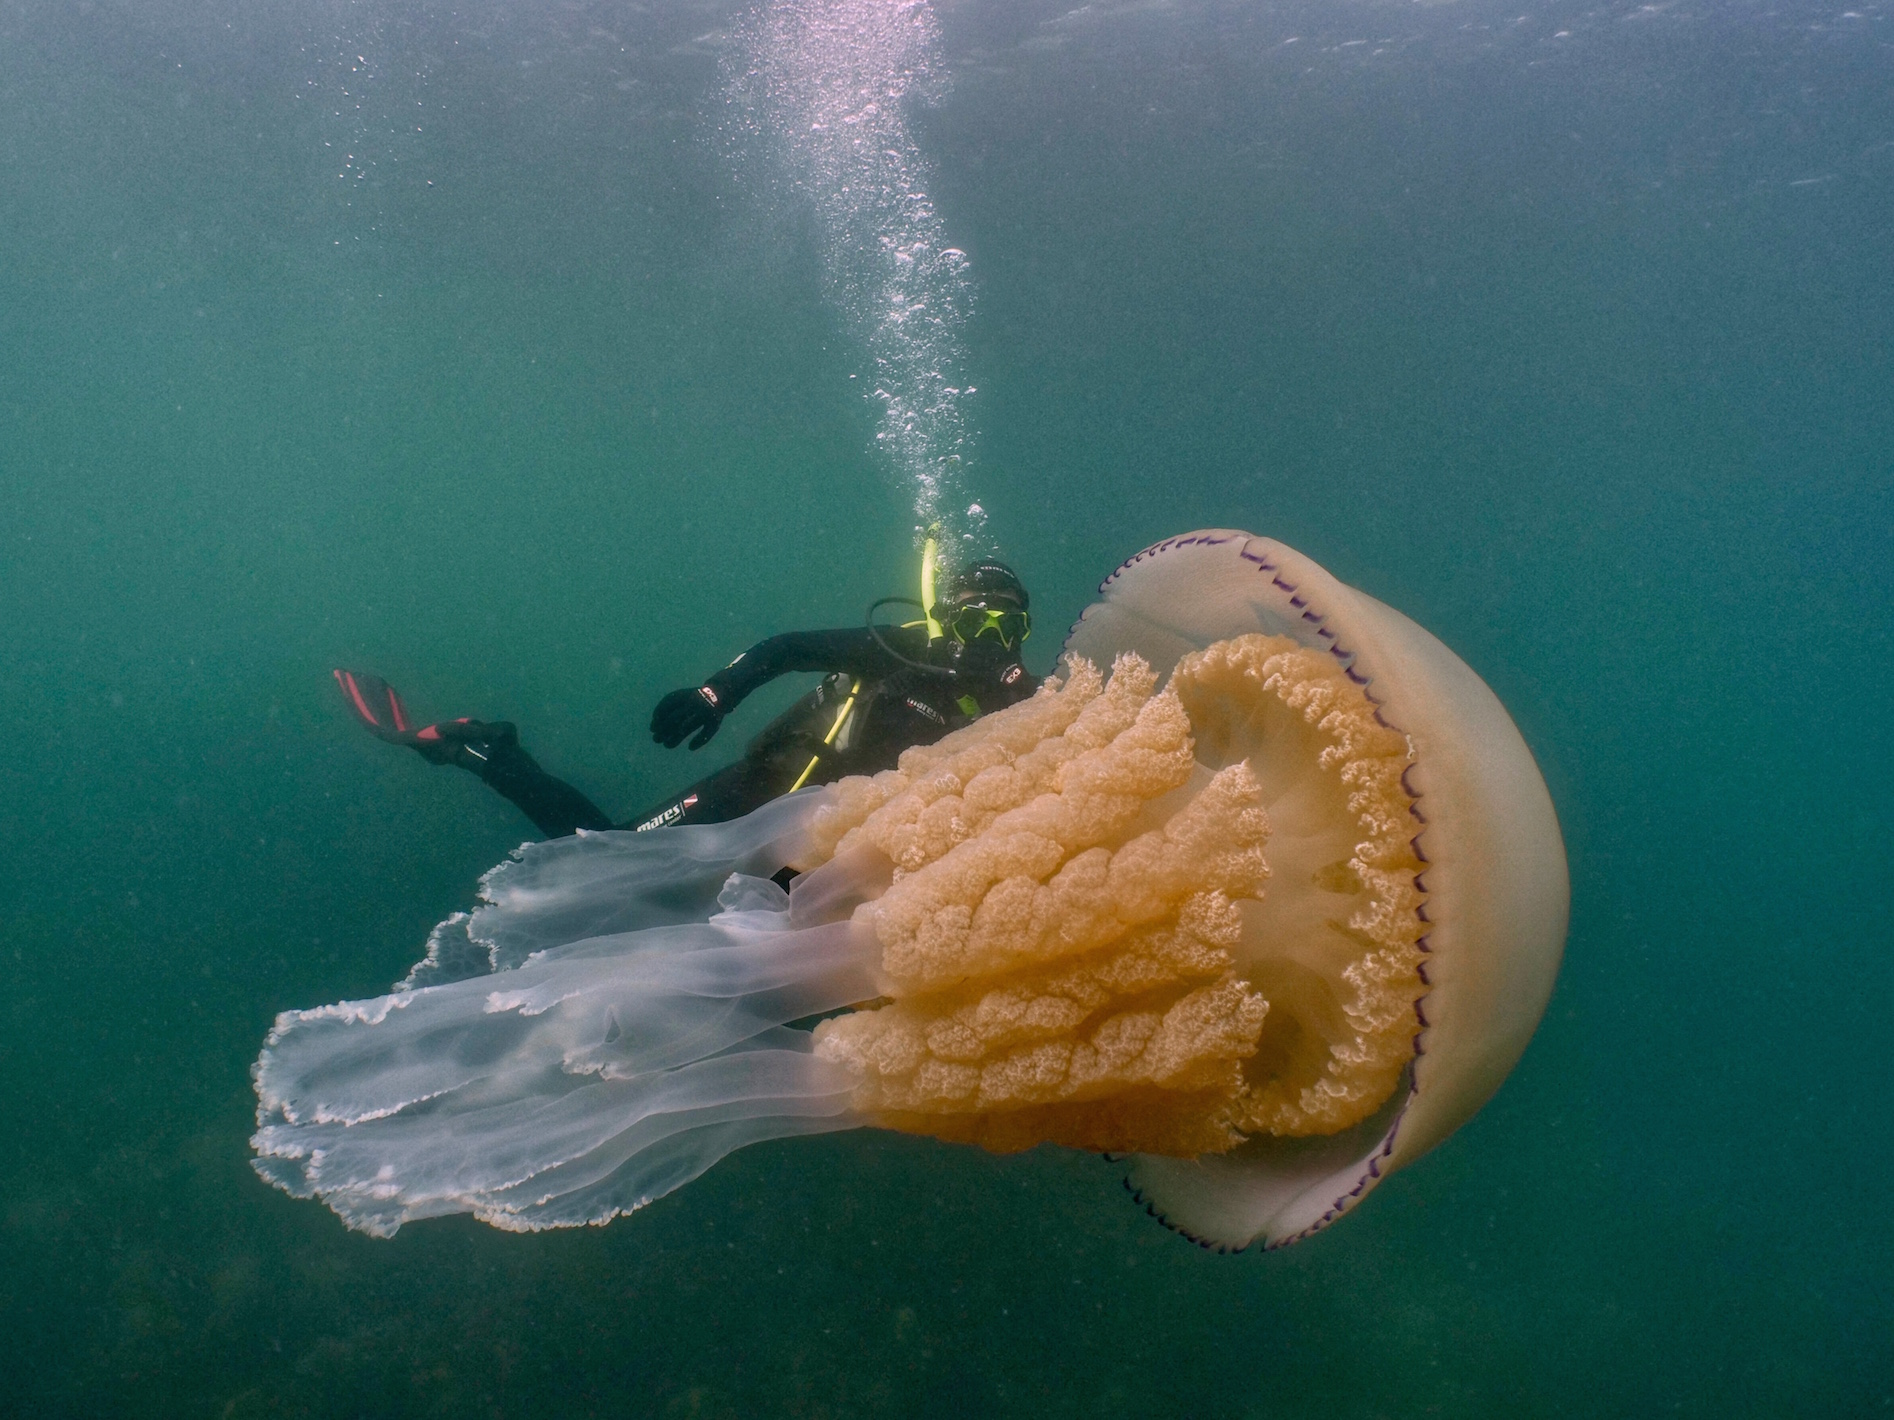 The huge jellyfish was found off the coast of Cornwall (Diver: Lizzie Daly/Picture: Dan Abbott)